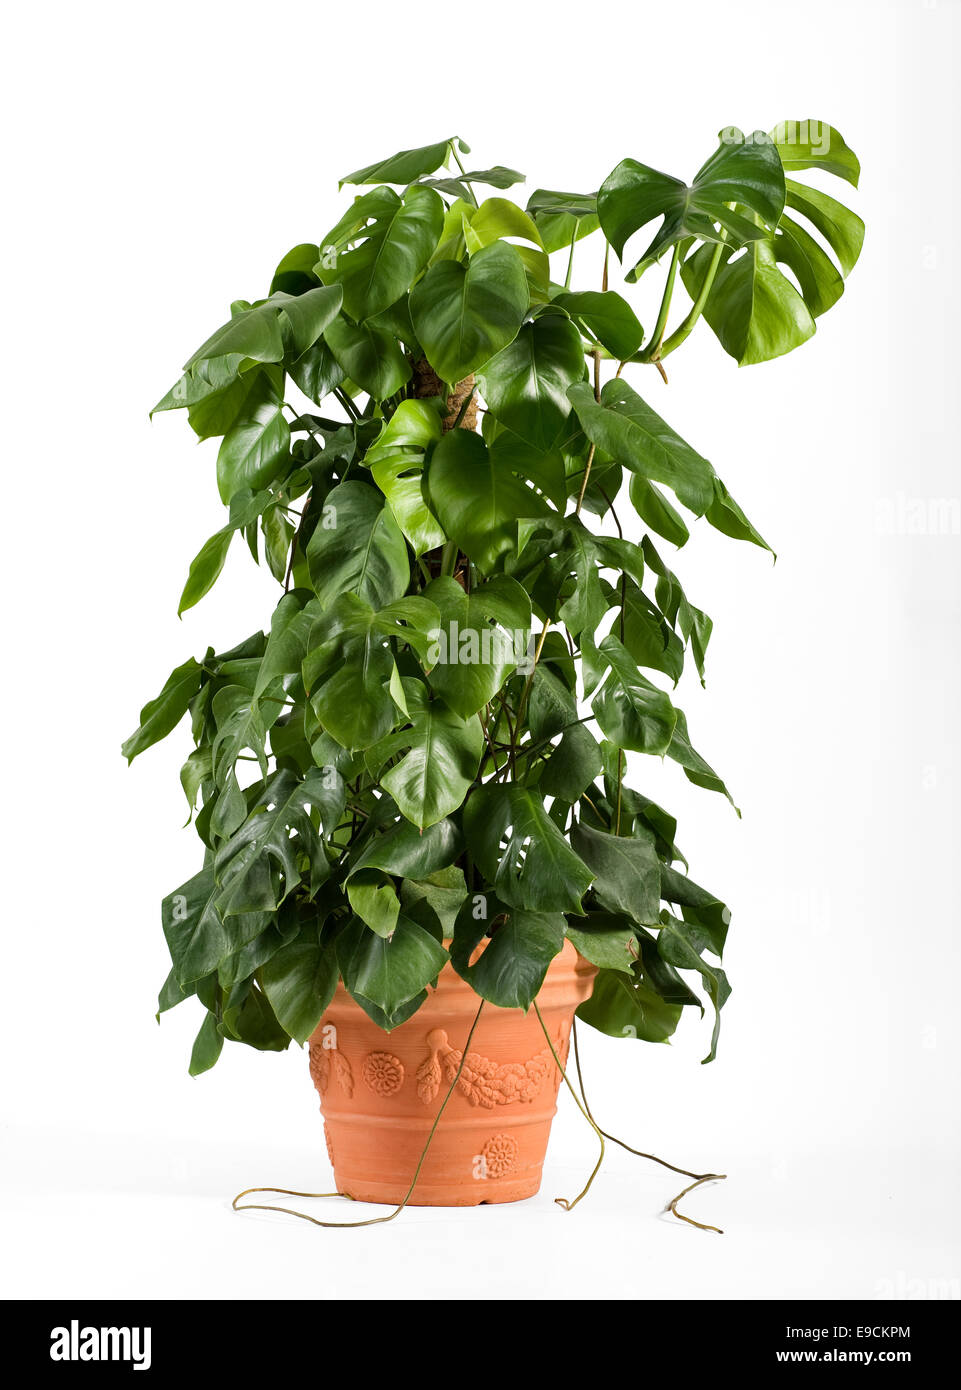 Leafy green delicious monster plant - Stock Image